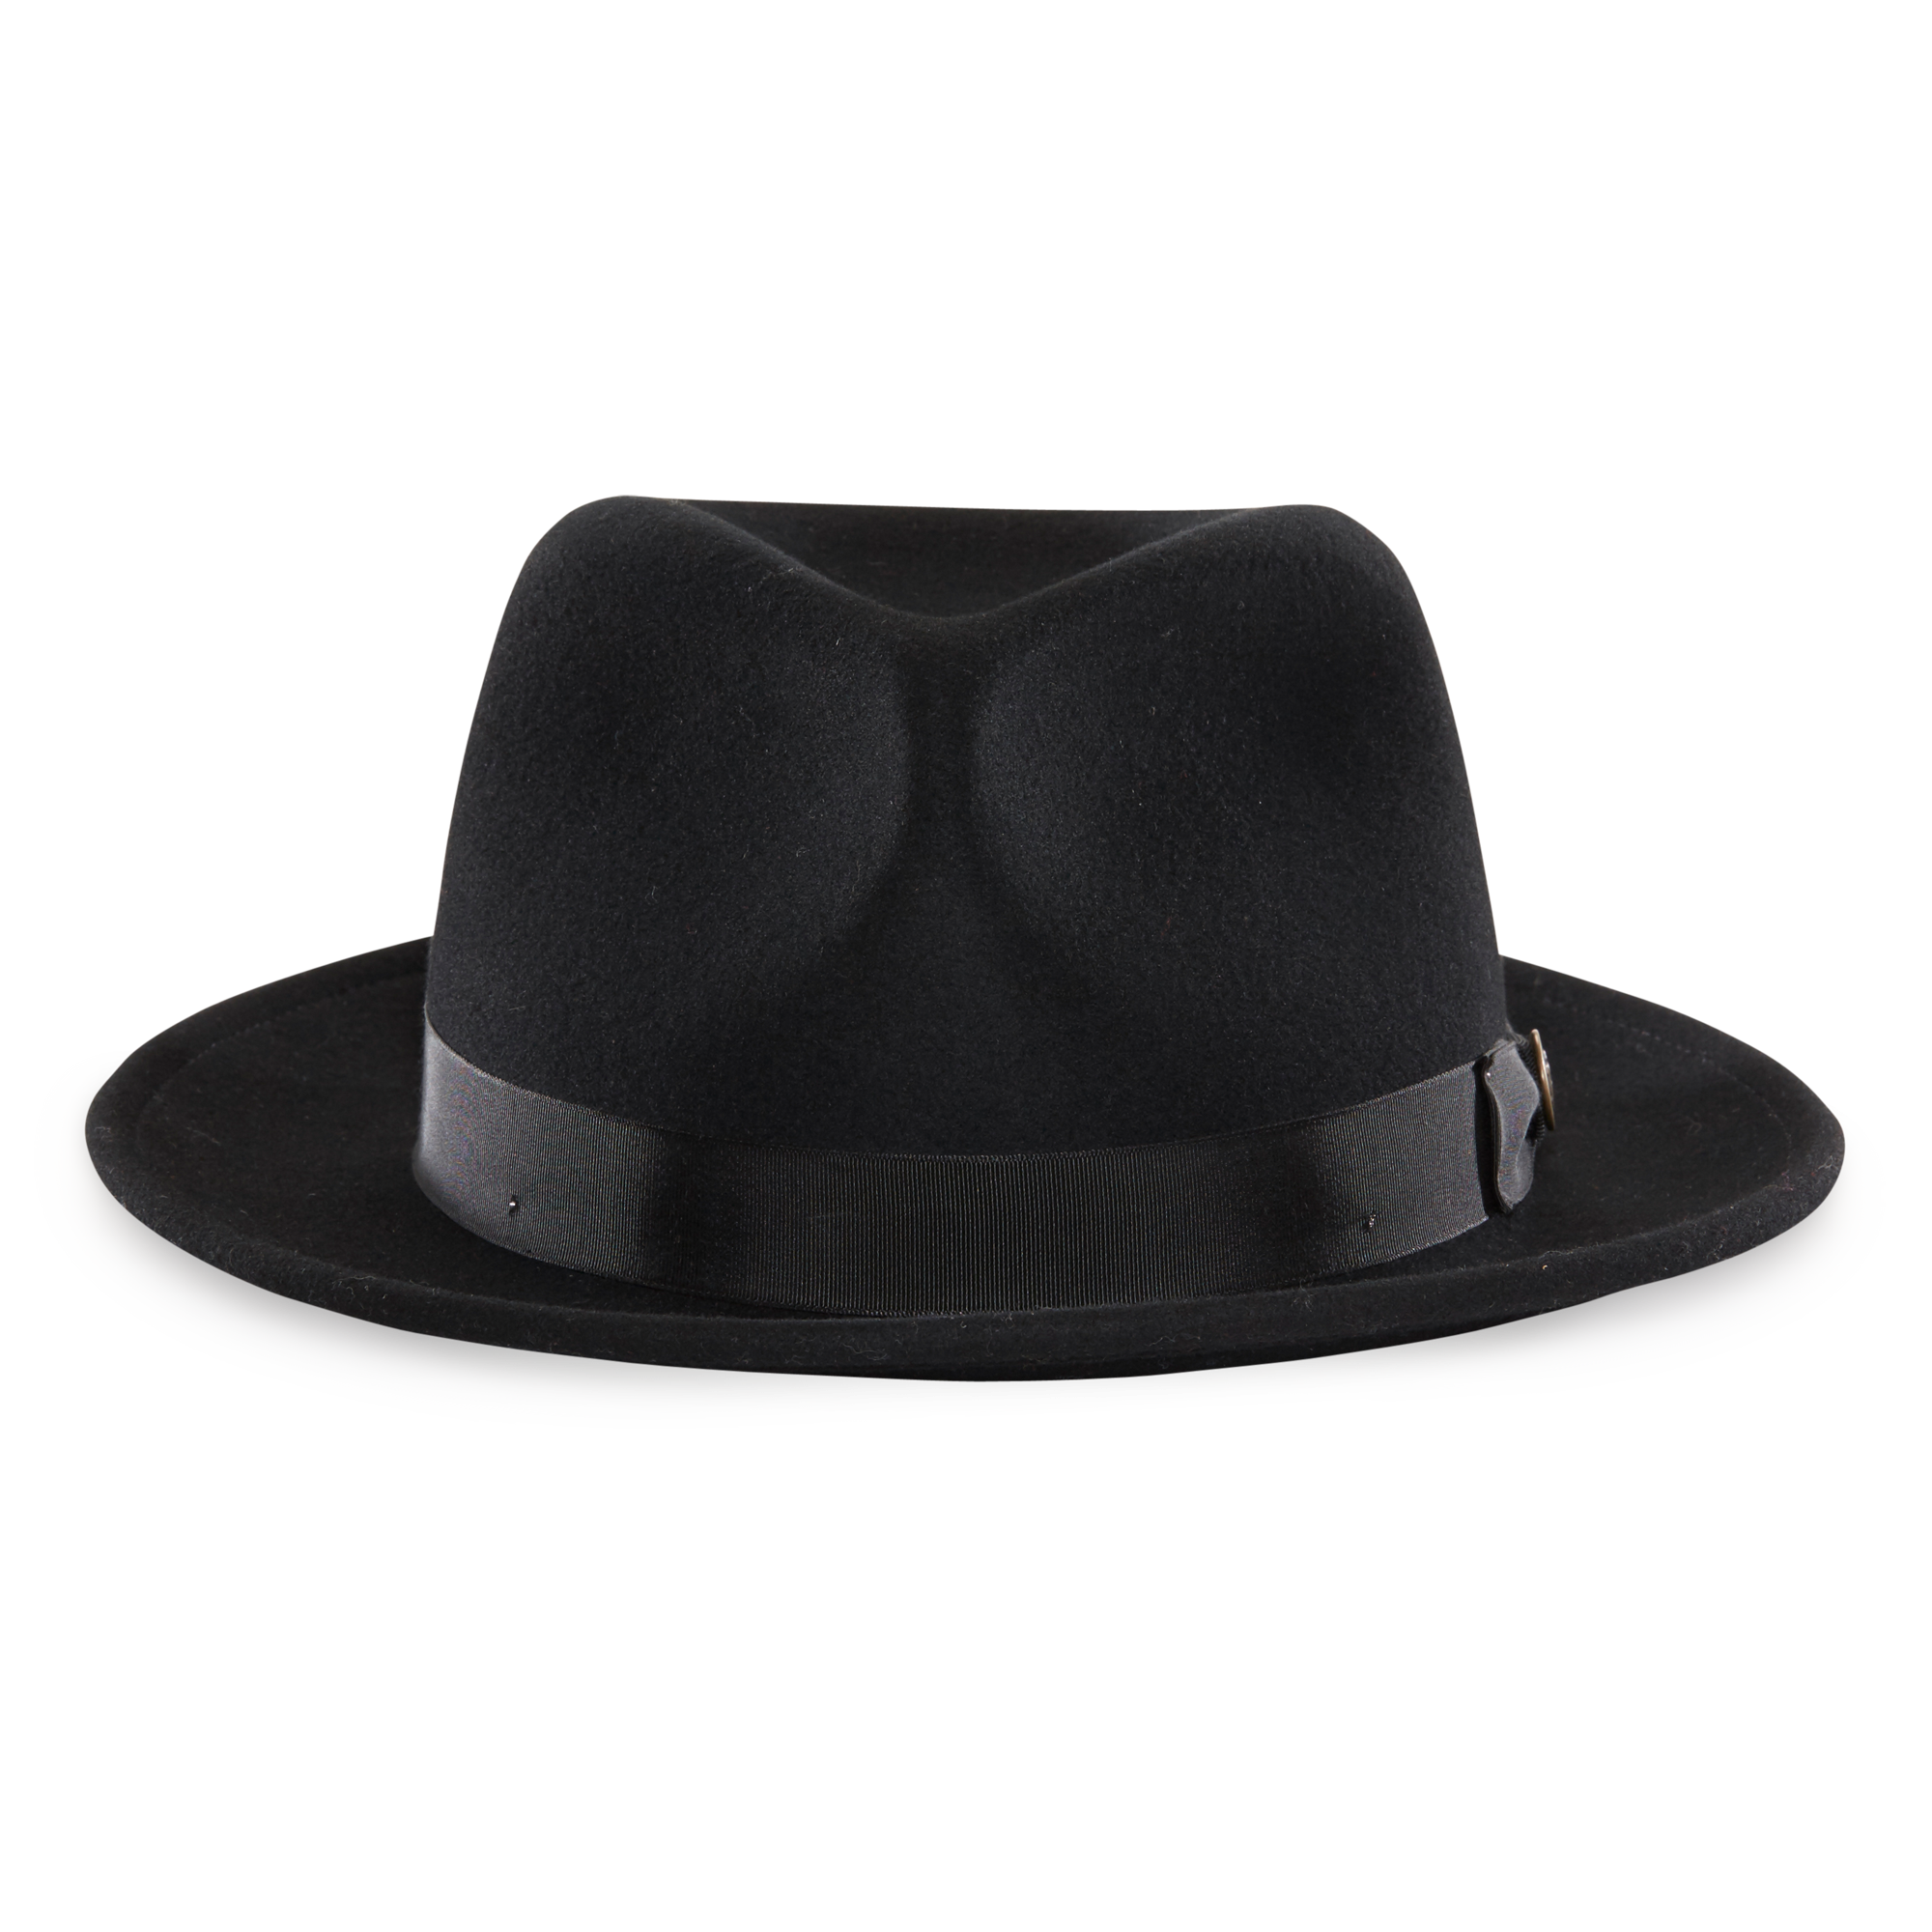 Hat png images the. Fedora clipart transparent background